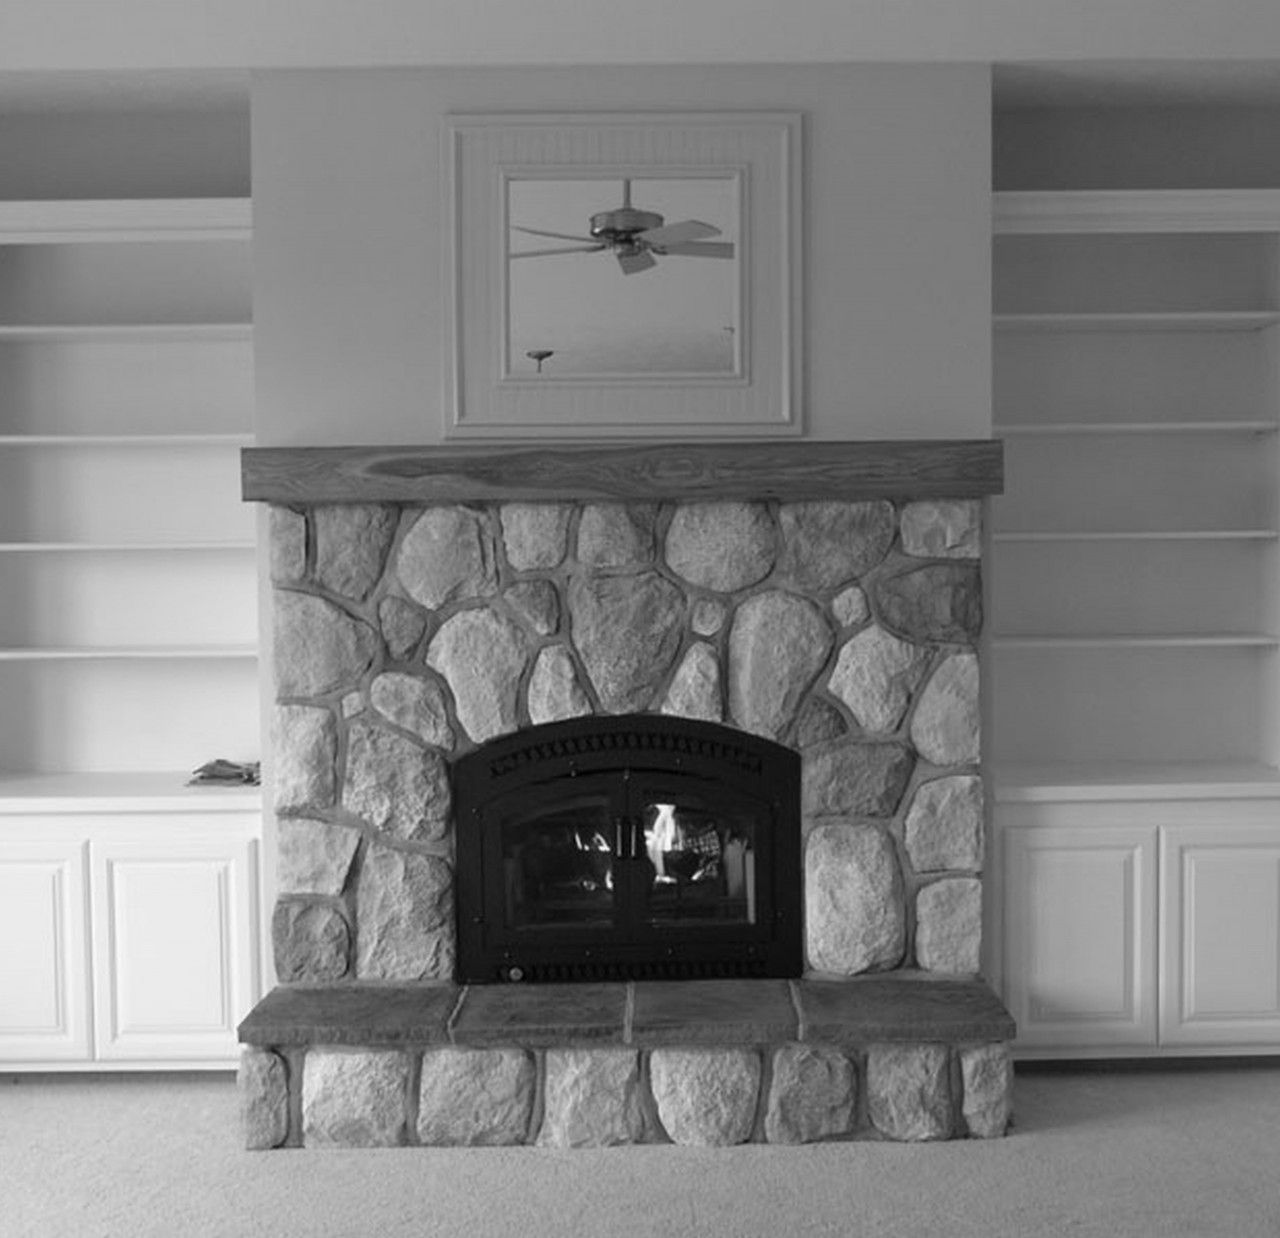 Stone WB stove with recessed storage either